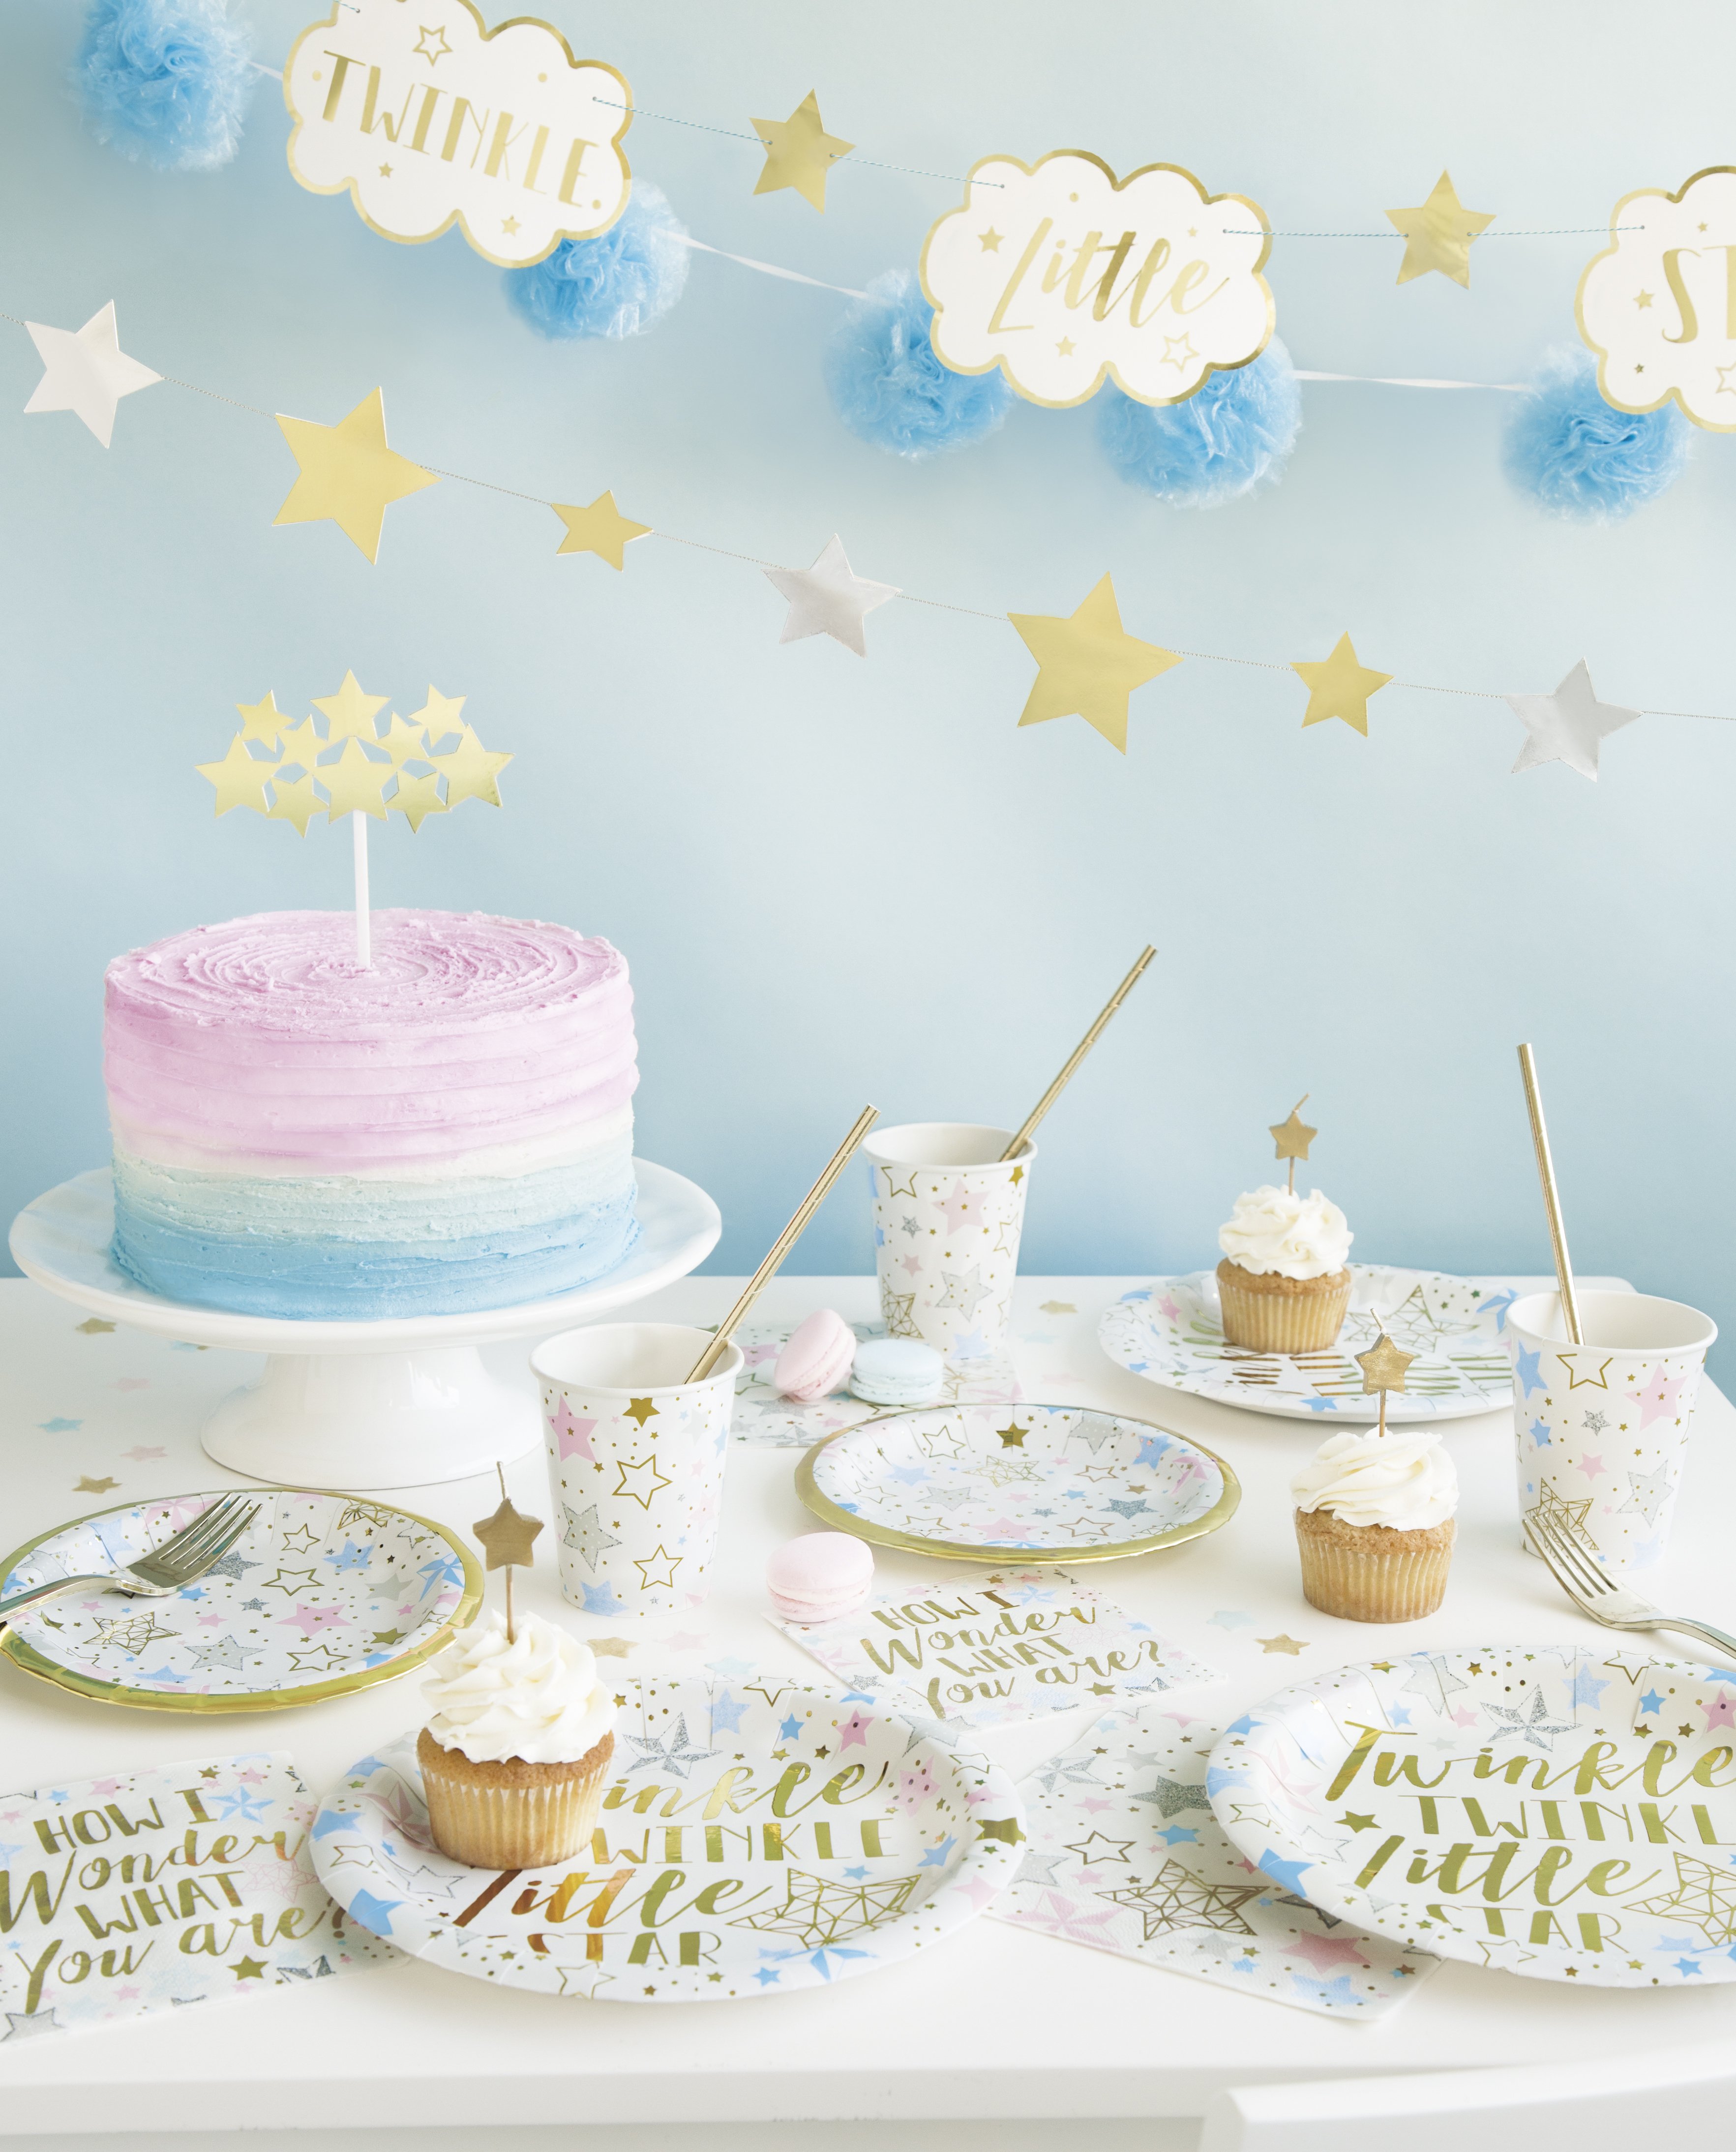 Twinkle twinkle little star tableware